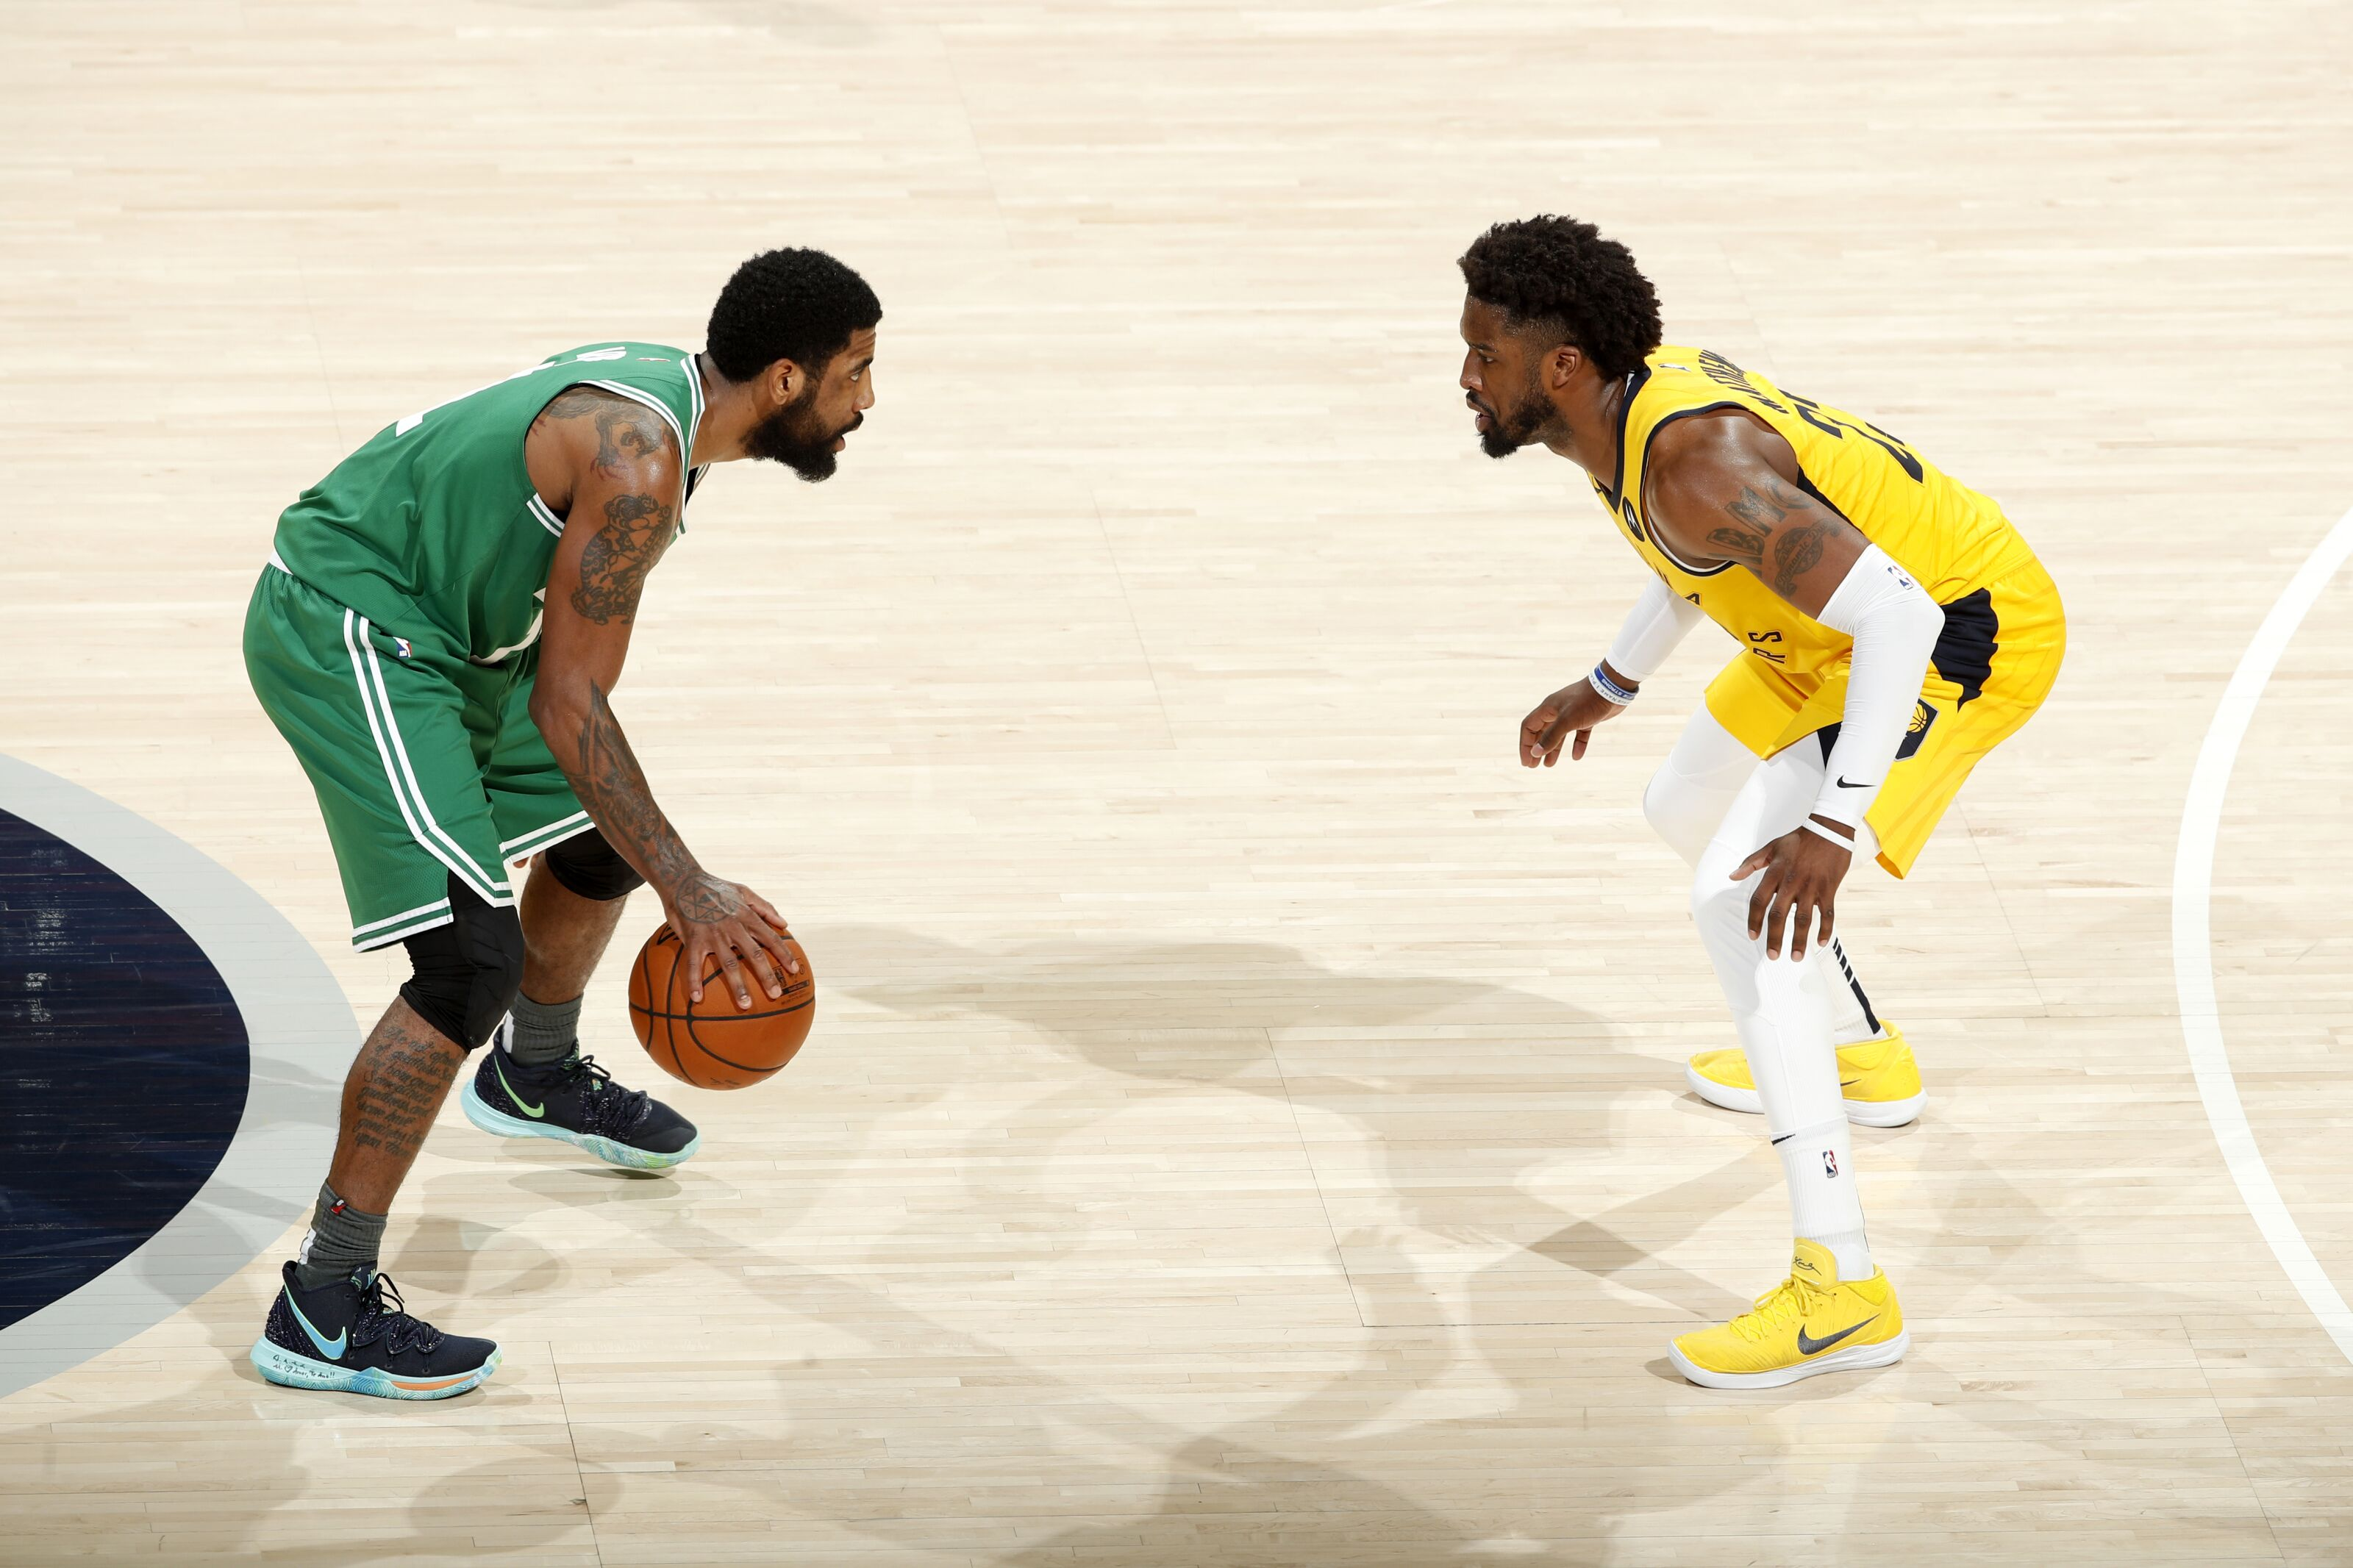 Boston Celtics: 3 takeaways from decisive Game 3 win vs. Pacers